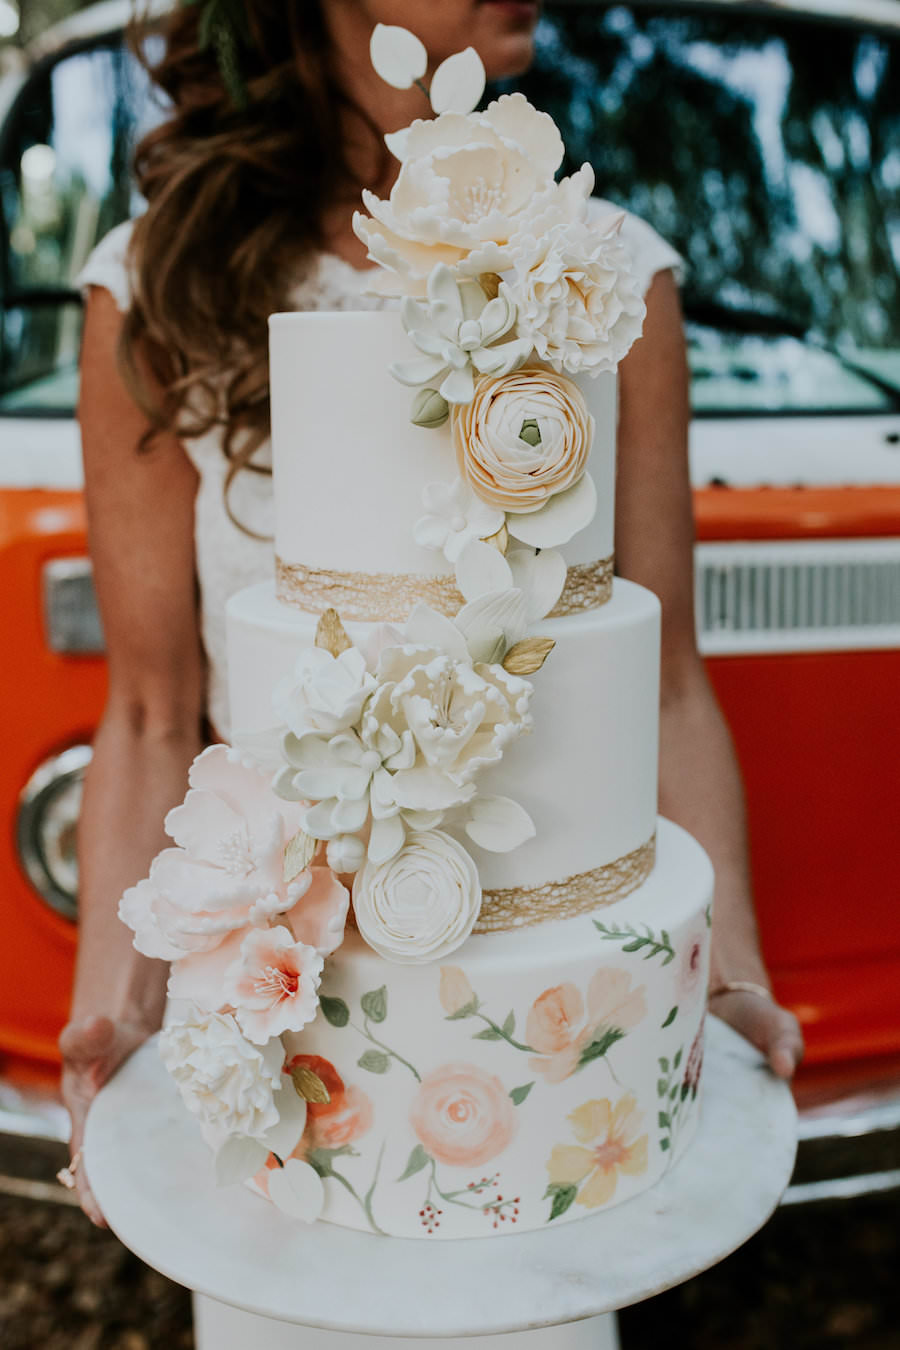 Bride Holding 3-Tier Round Hand Painted Wedding Cake with Cascading Sugar Flowers and Gold Leaf Boarder   Retro Vintage Boho Wedding Inspiration with Orange VW Bus   Tampa Wedding Cake Bakery Hands on Sweets